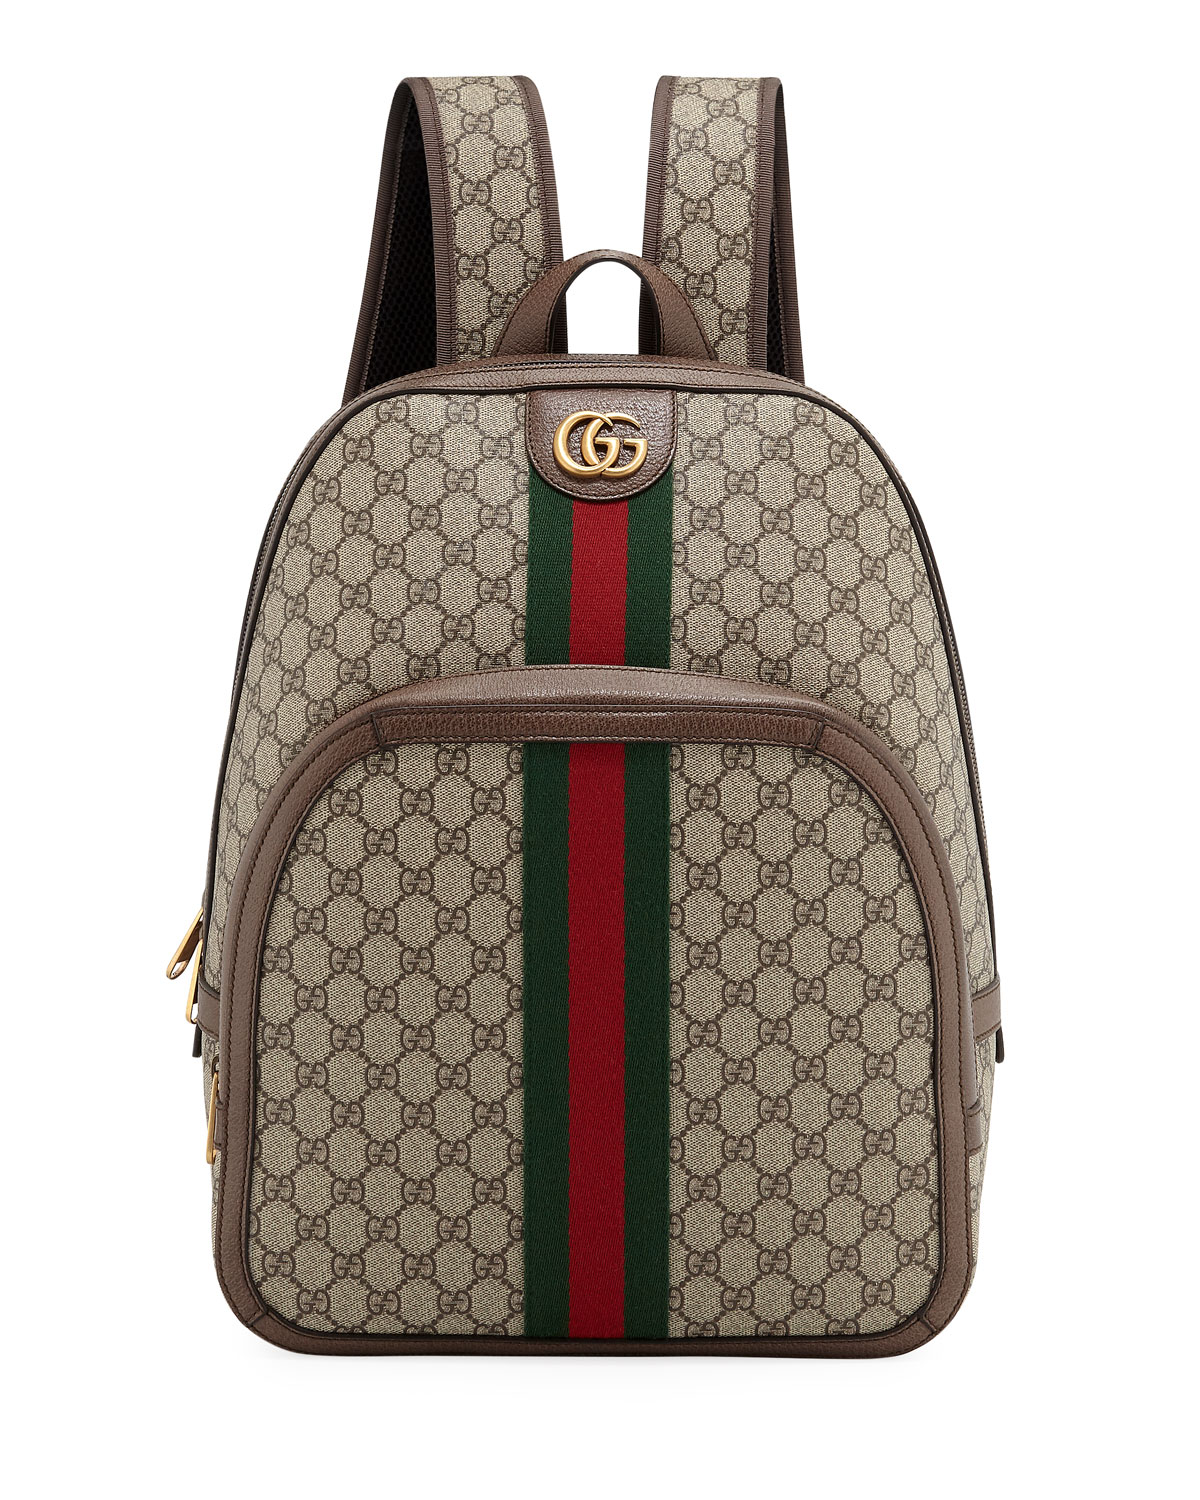 09c10c7c81fa Gucci Men s GG Supreme Medium Canvas Backpack